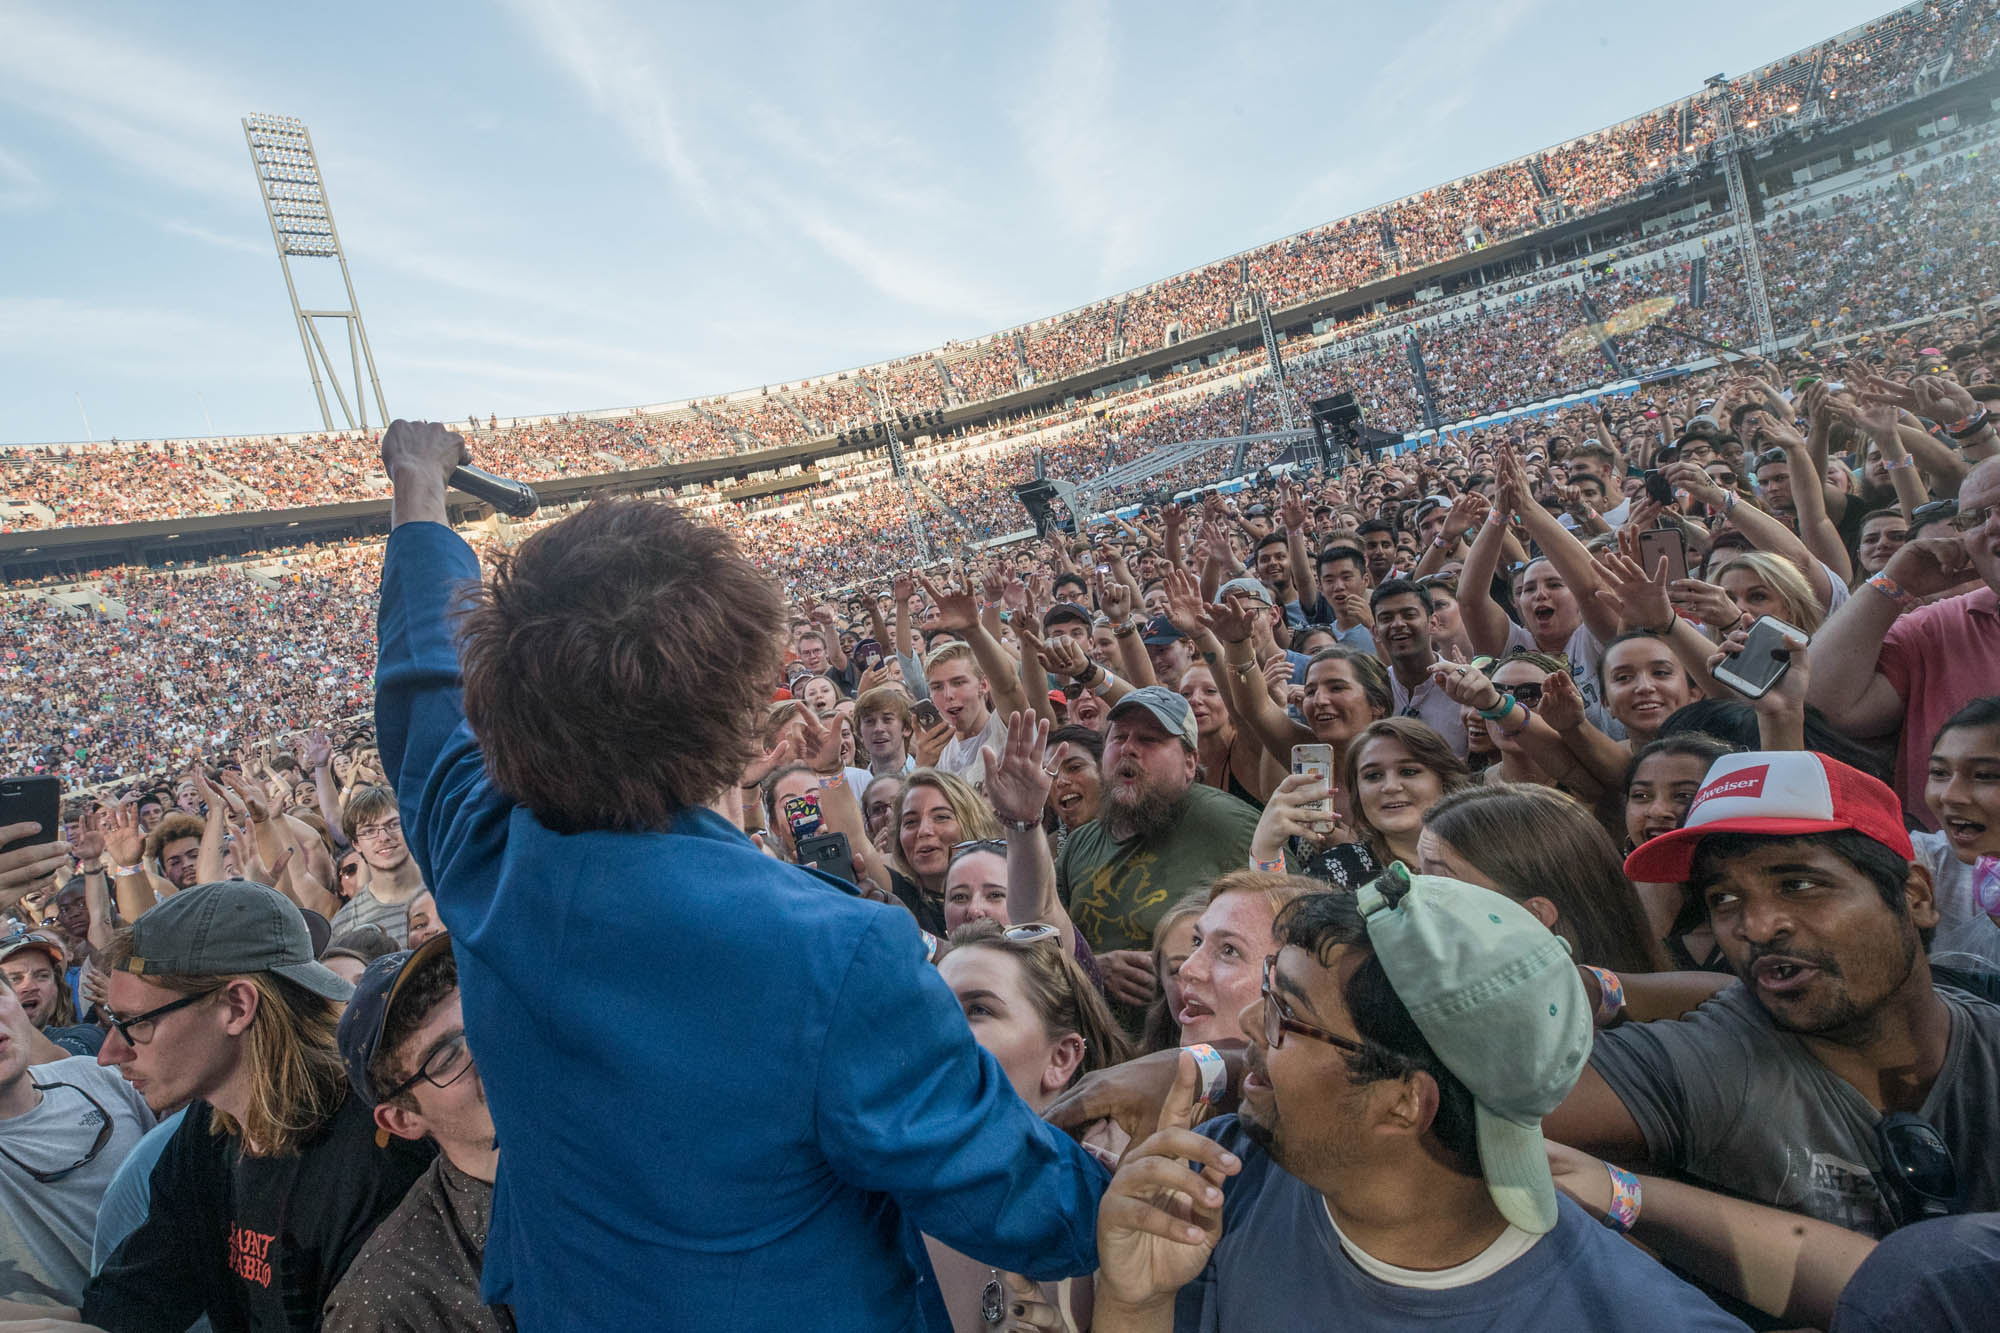 The singer from Cage the Elephant sings to a large crowd